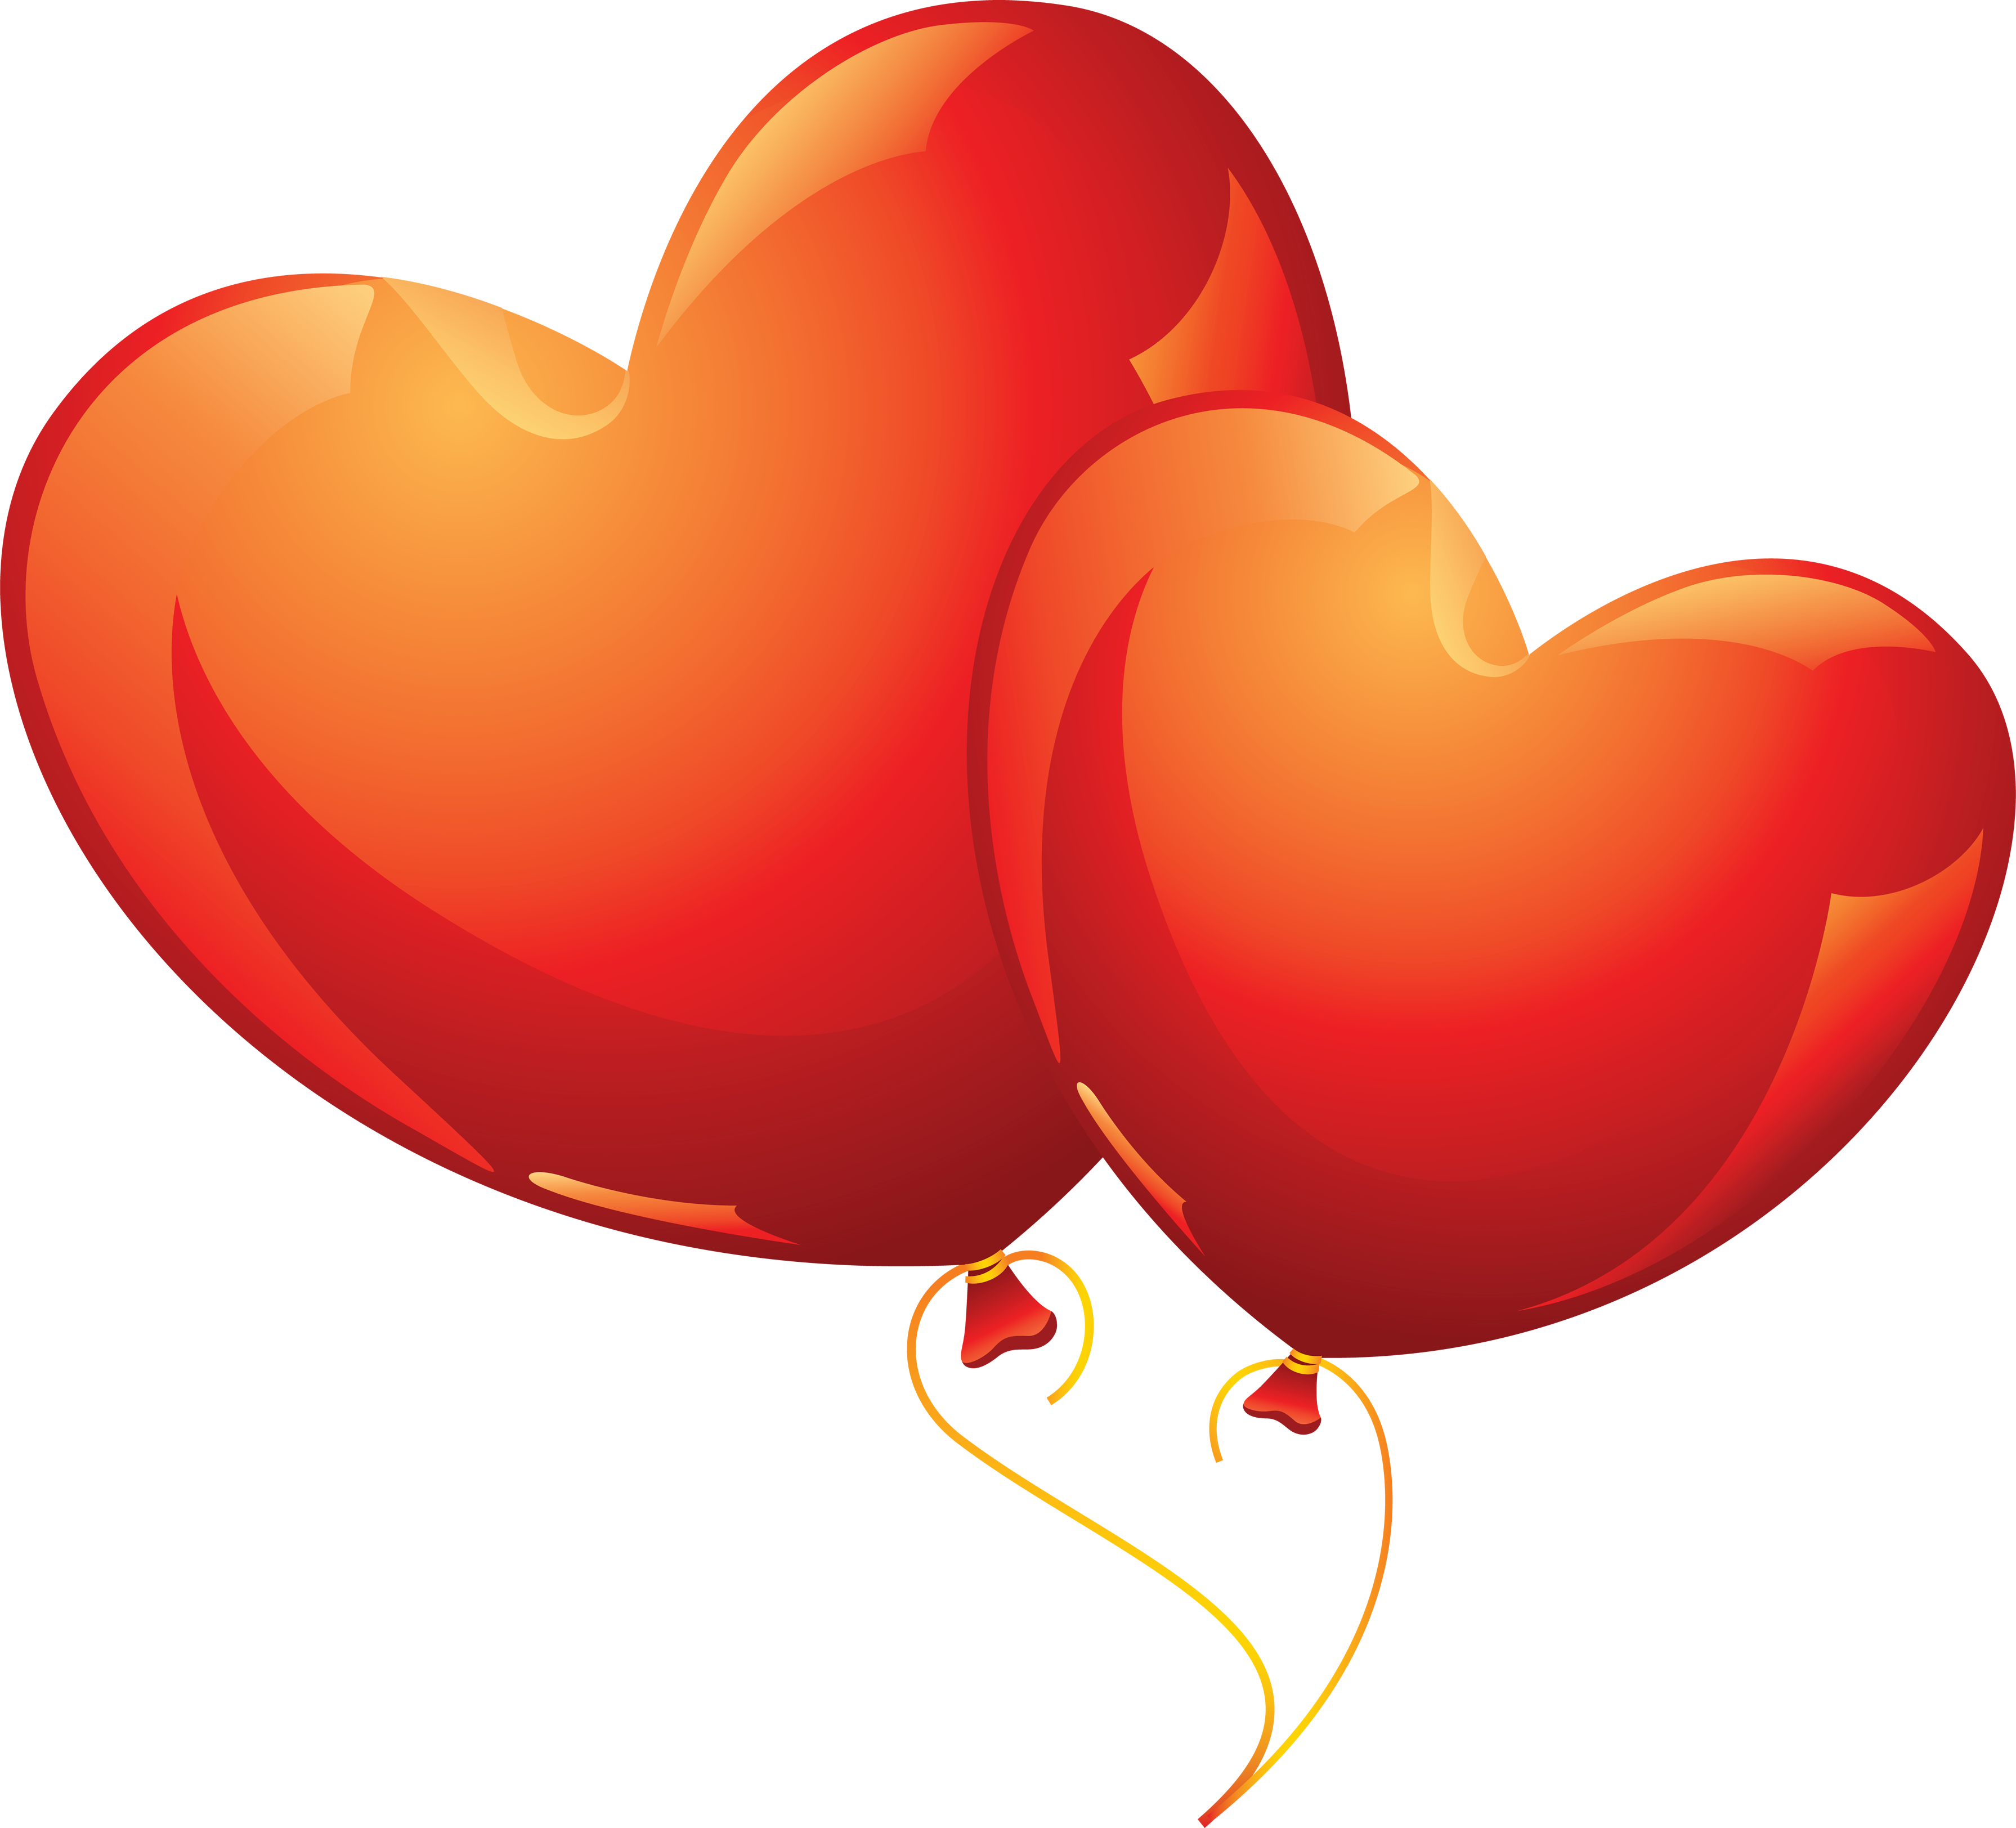 3582x3248 Balloon Png